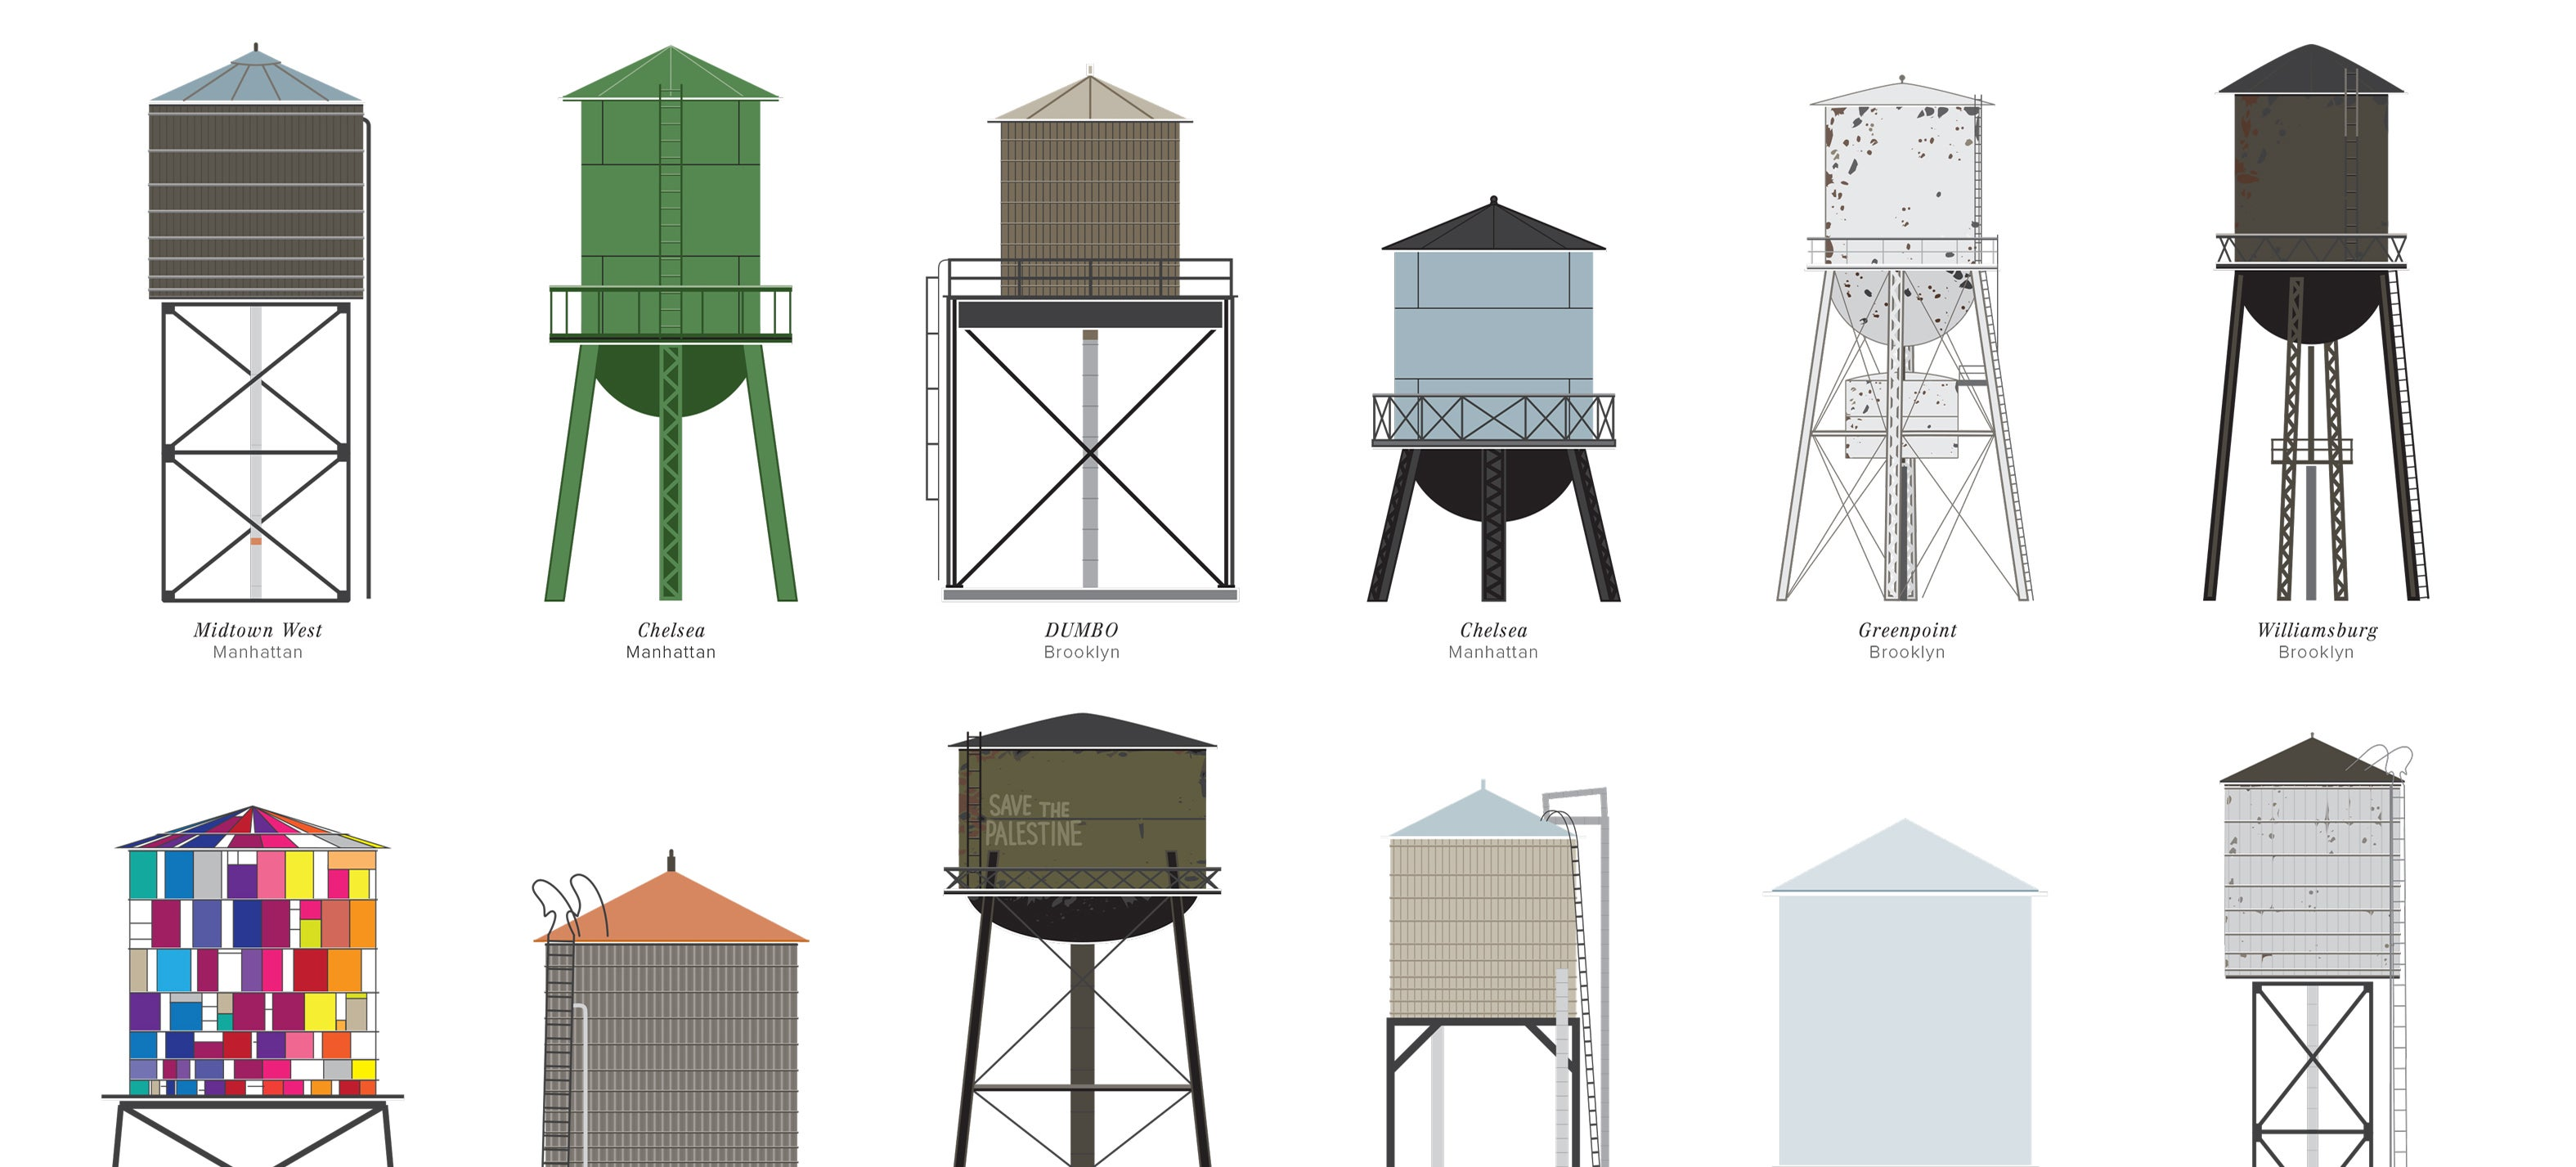 The Dirty, Dilapidated, and Delightful Water Towers of New York City ...